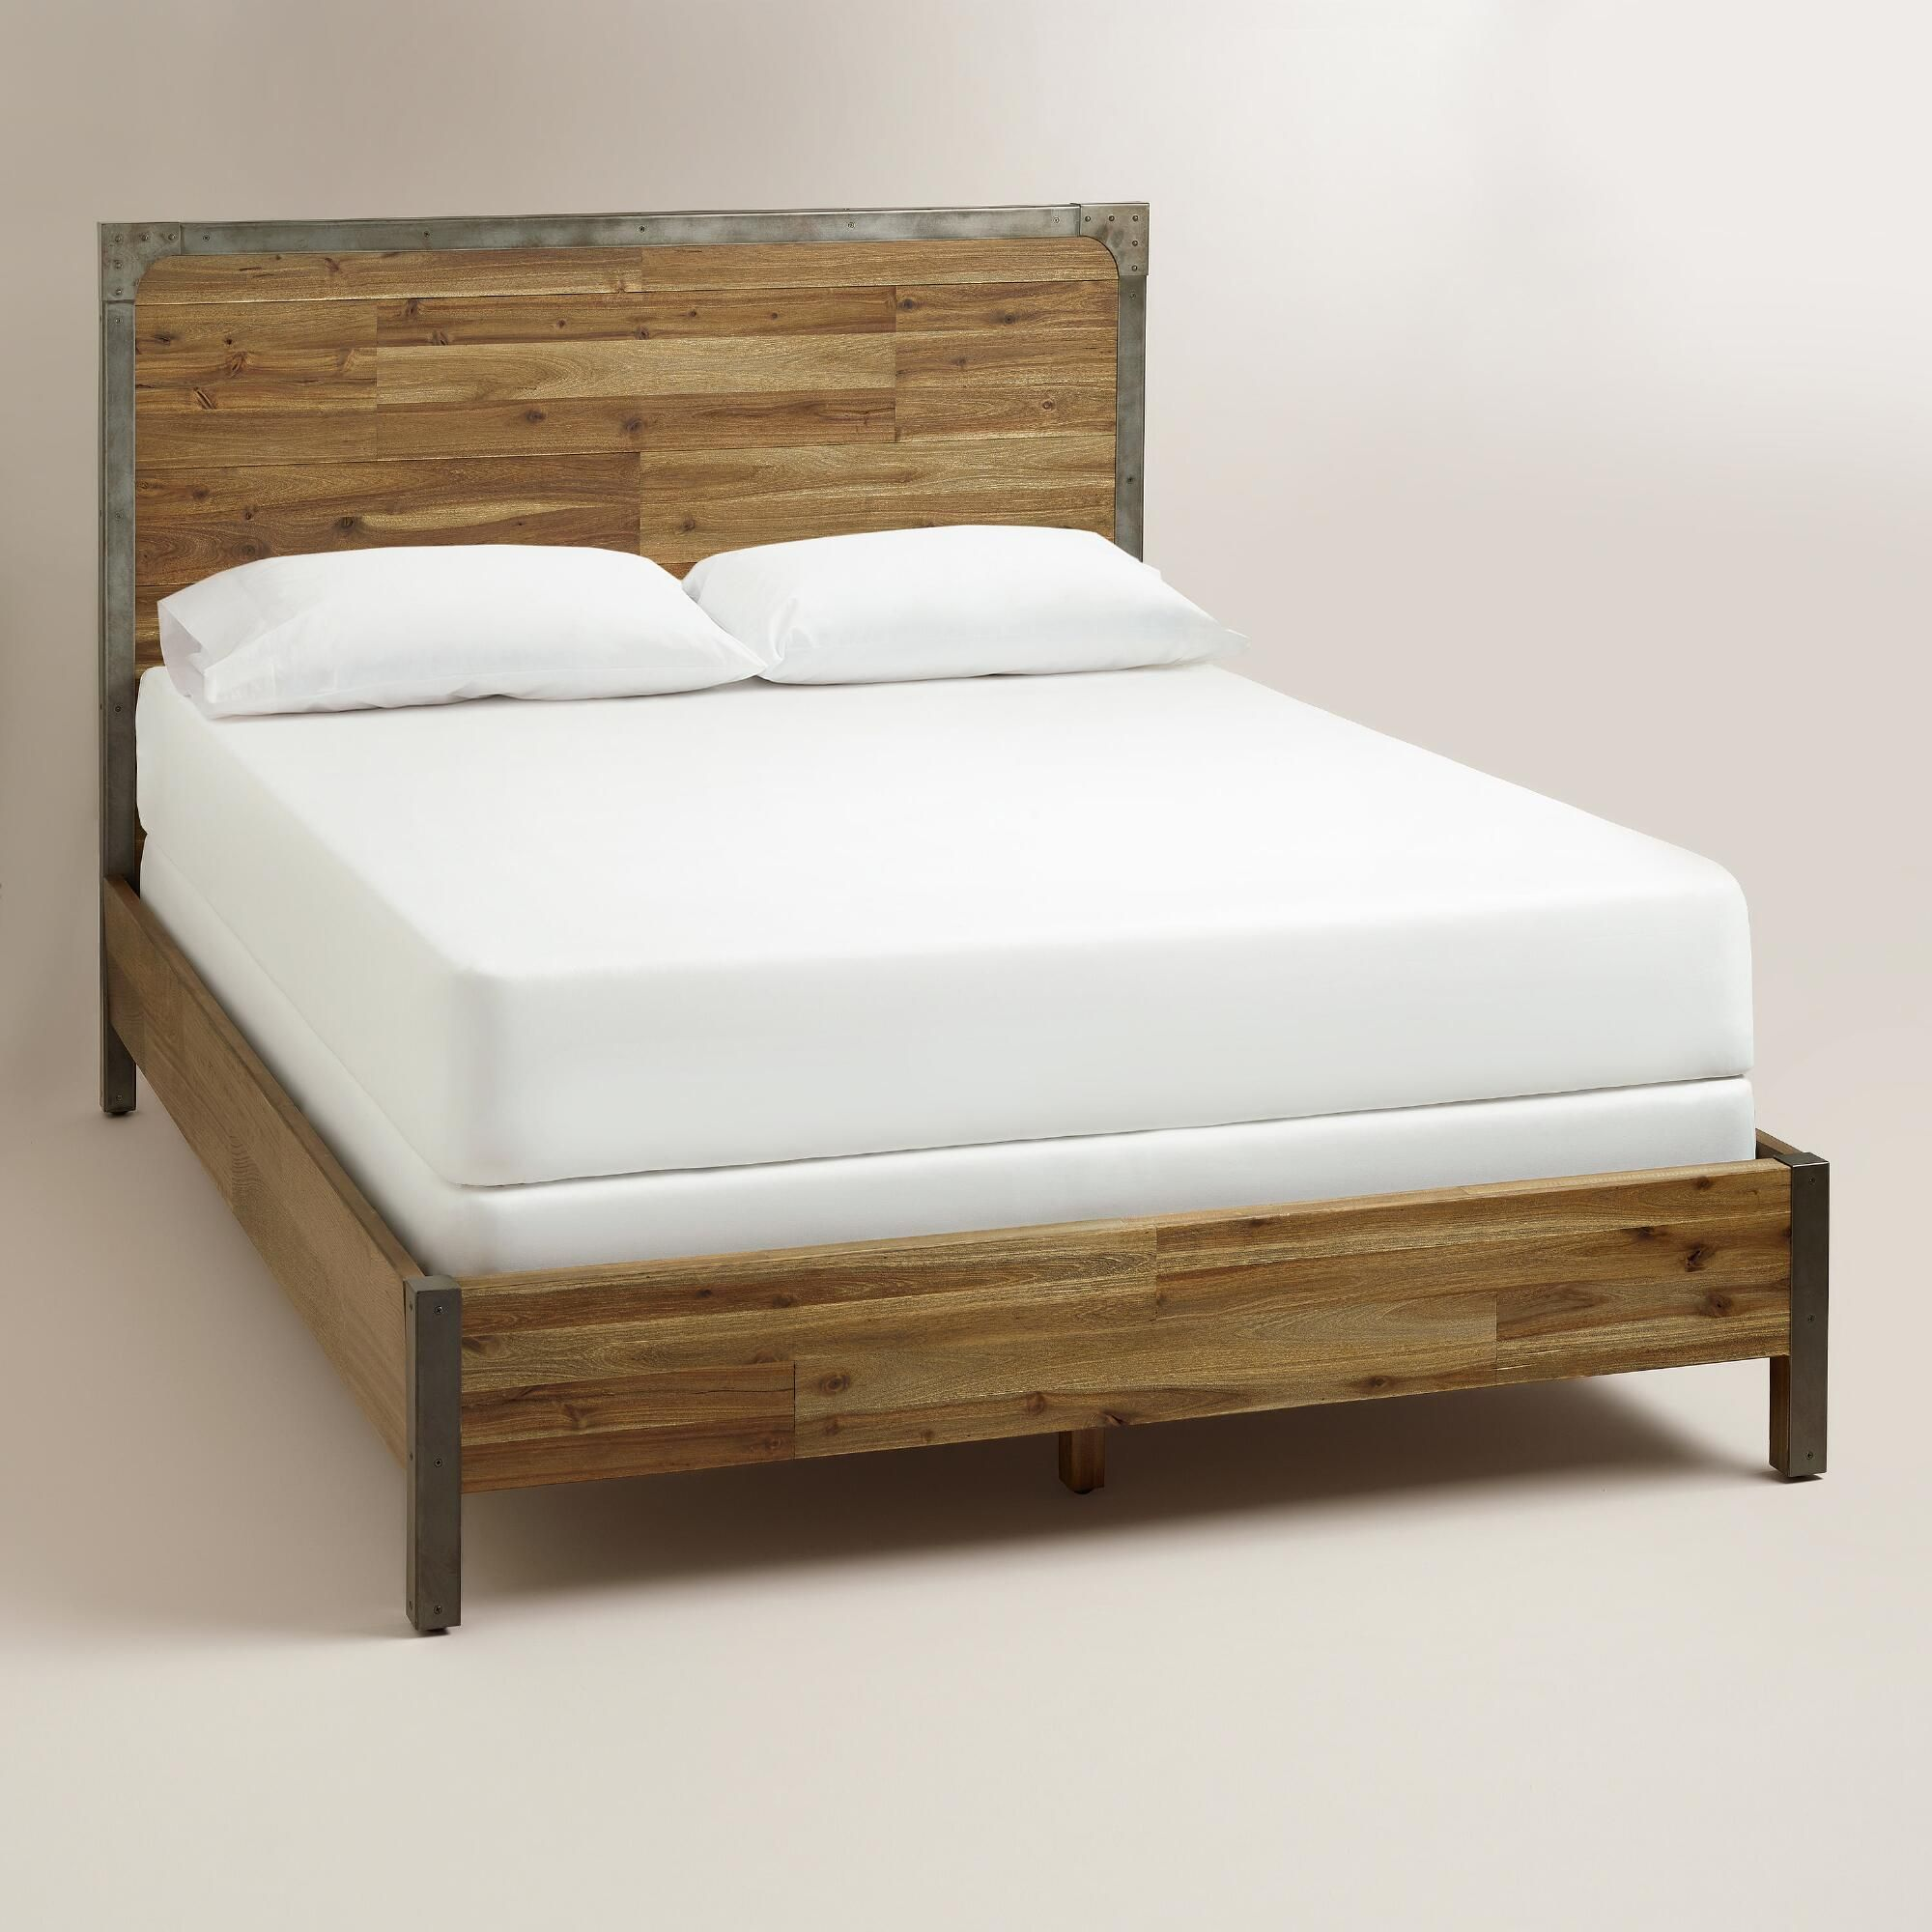 Wood And Metal Aiden Bed Bed Frame And Headboard Cheap Bed Frame Queen Bed Frame